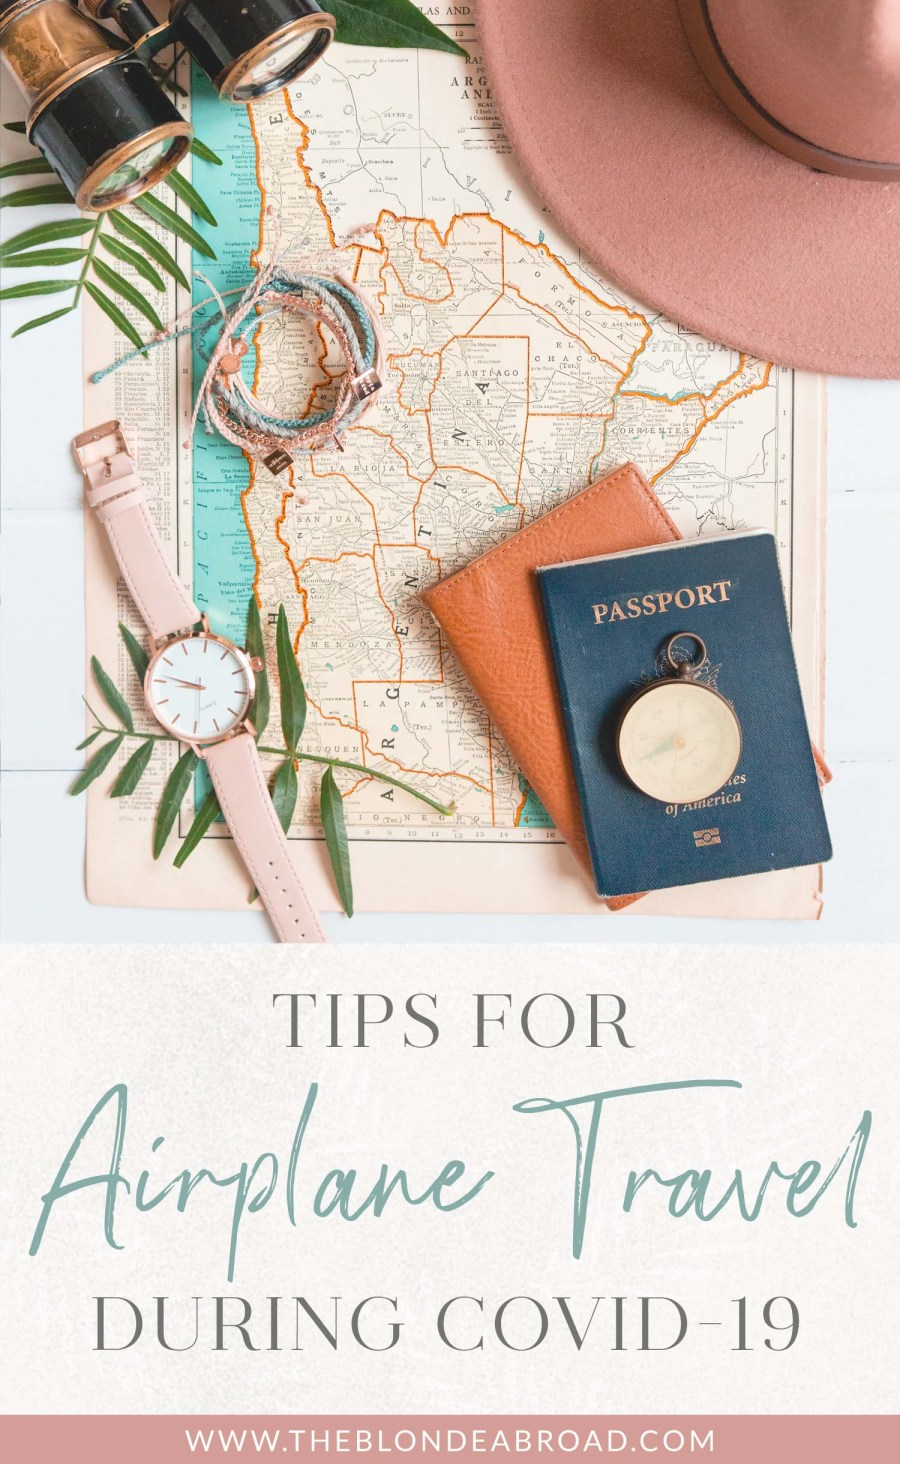 Tips for Airplane Travel During COVID